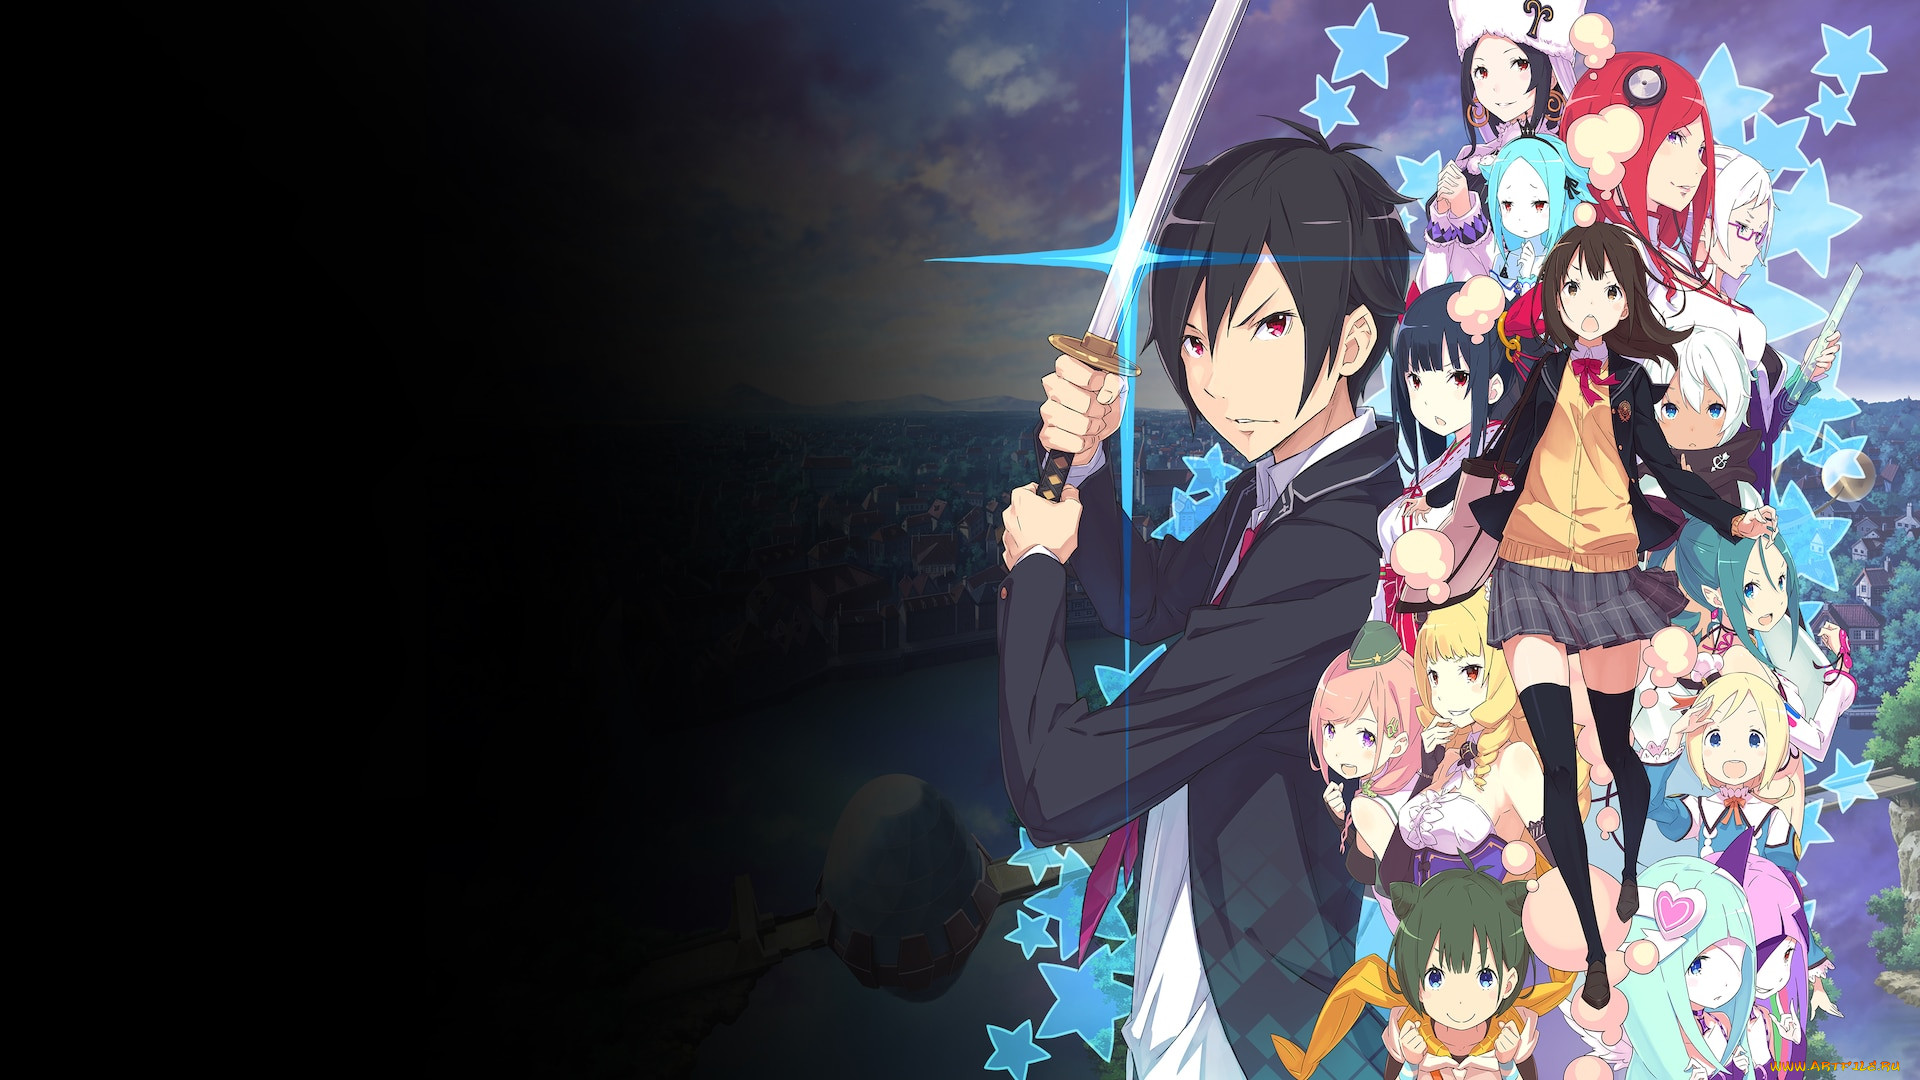 conception plus maidens of the twelve stars, аниме, unknown,  другое , conception, plus, maidens, of, the, twelve, stars